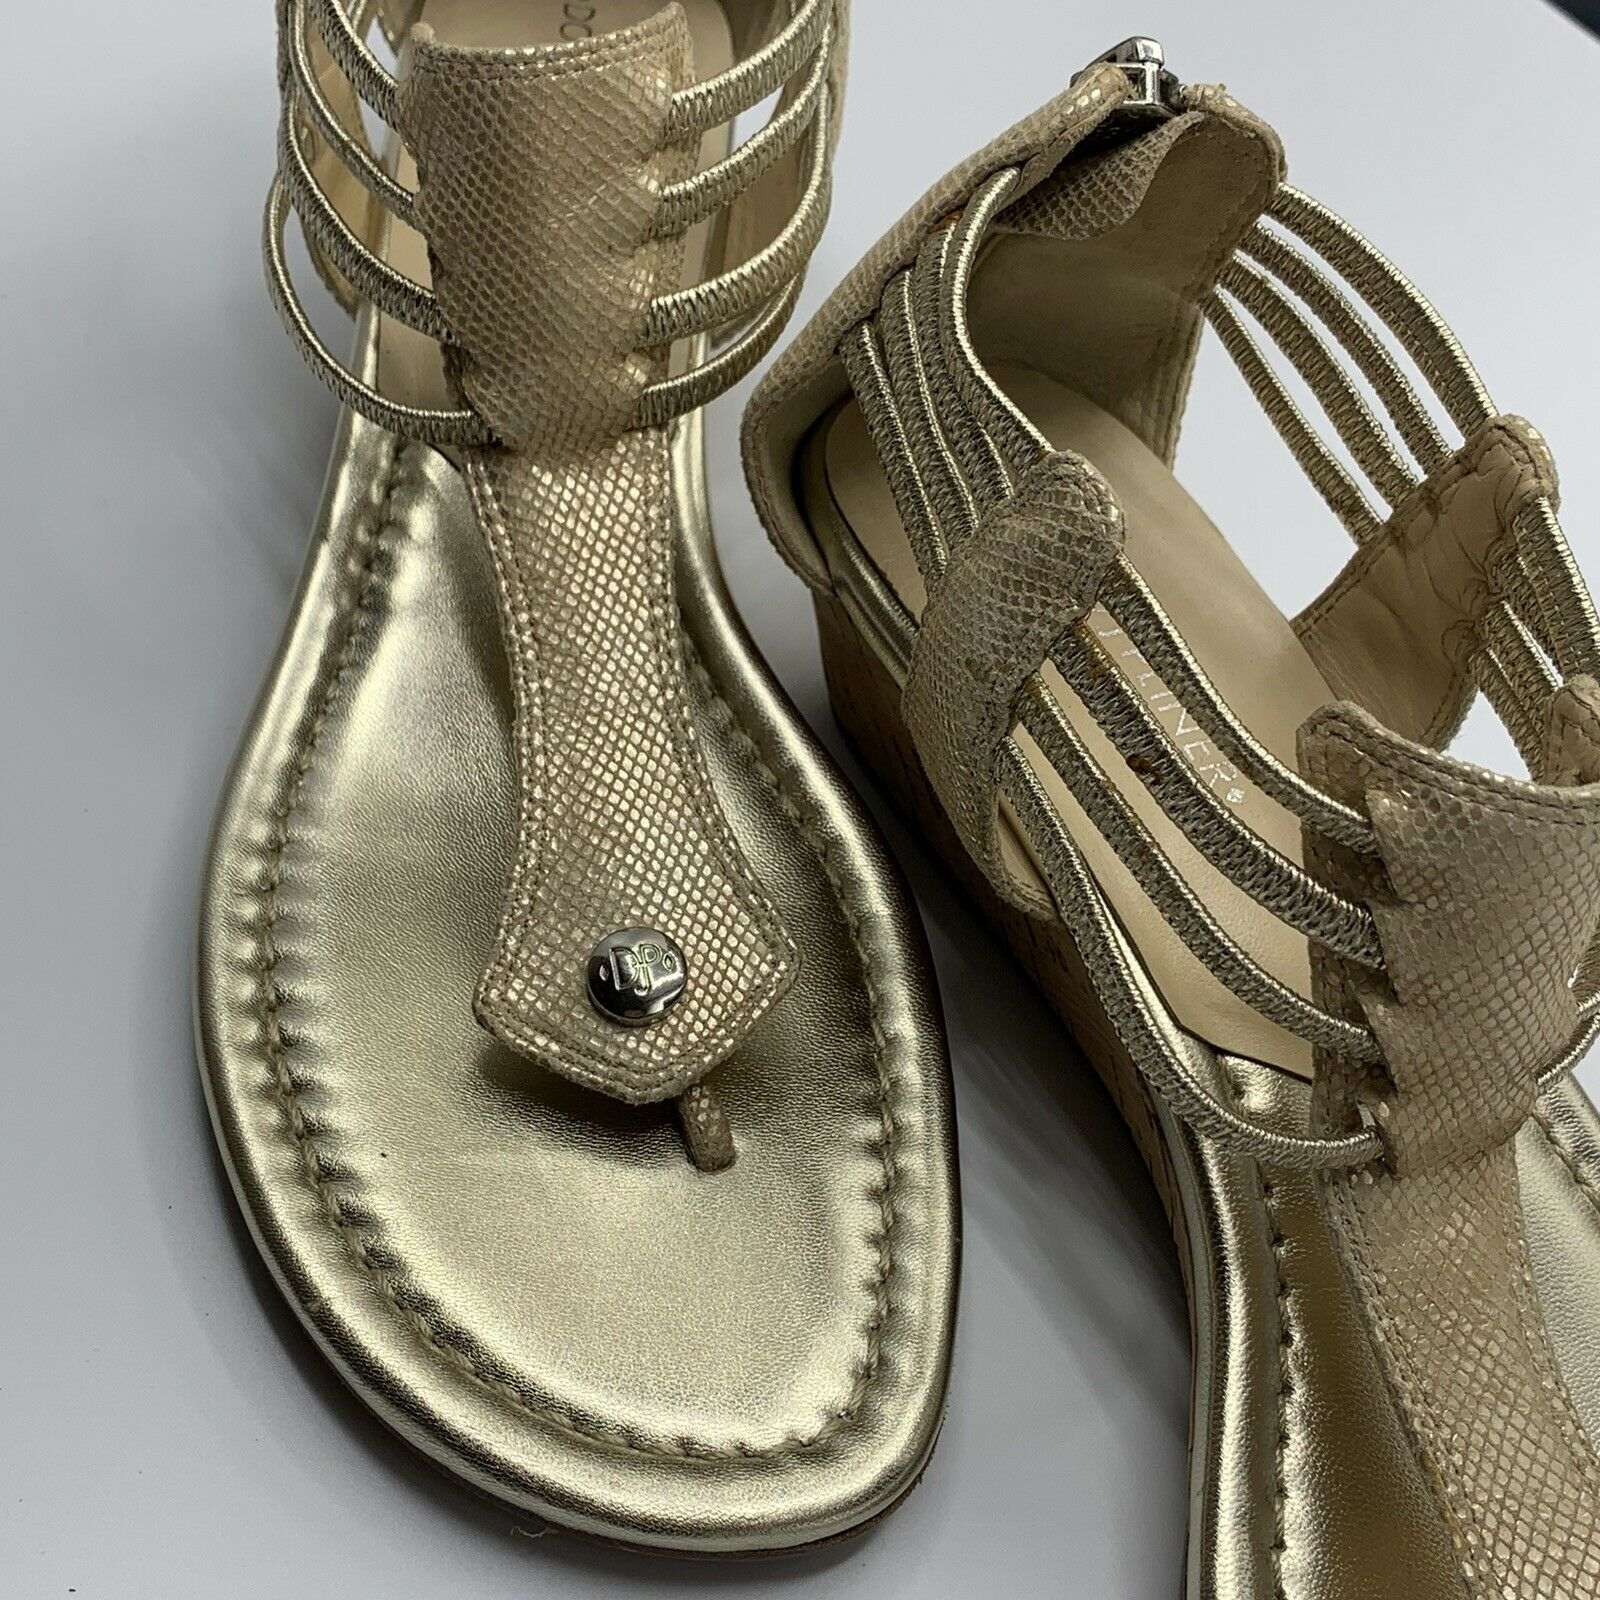 gold strappy sandals - image 2